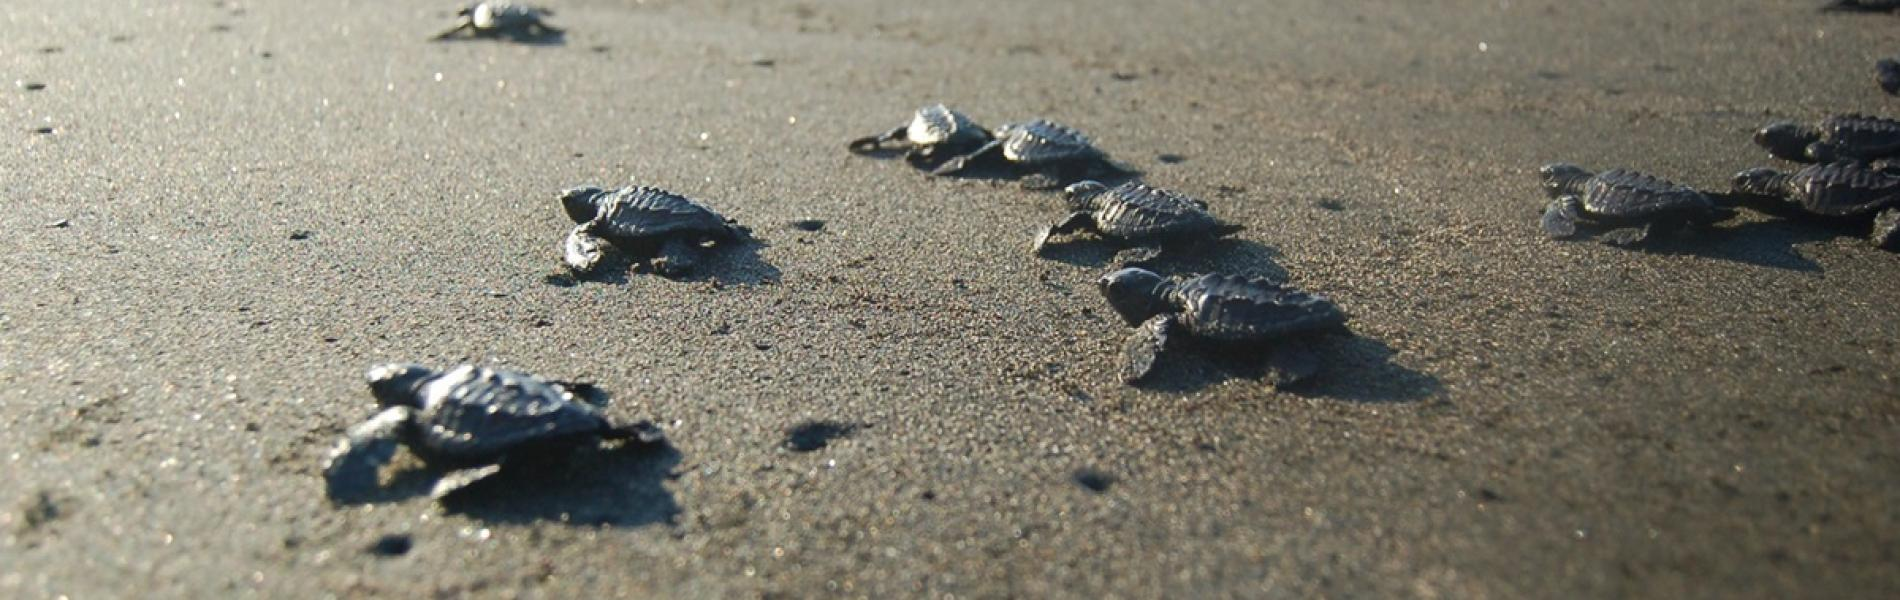 Baby sea turtles crawling across the sand towards the ocean